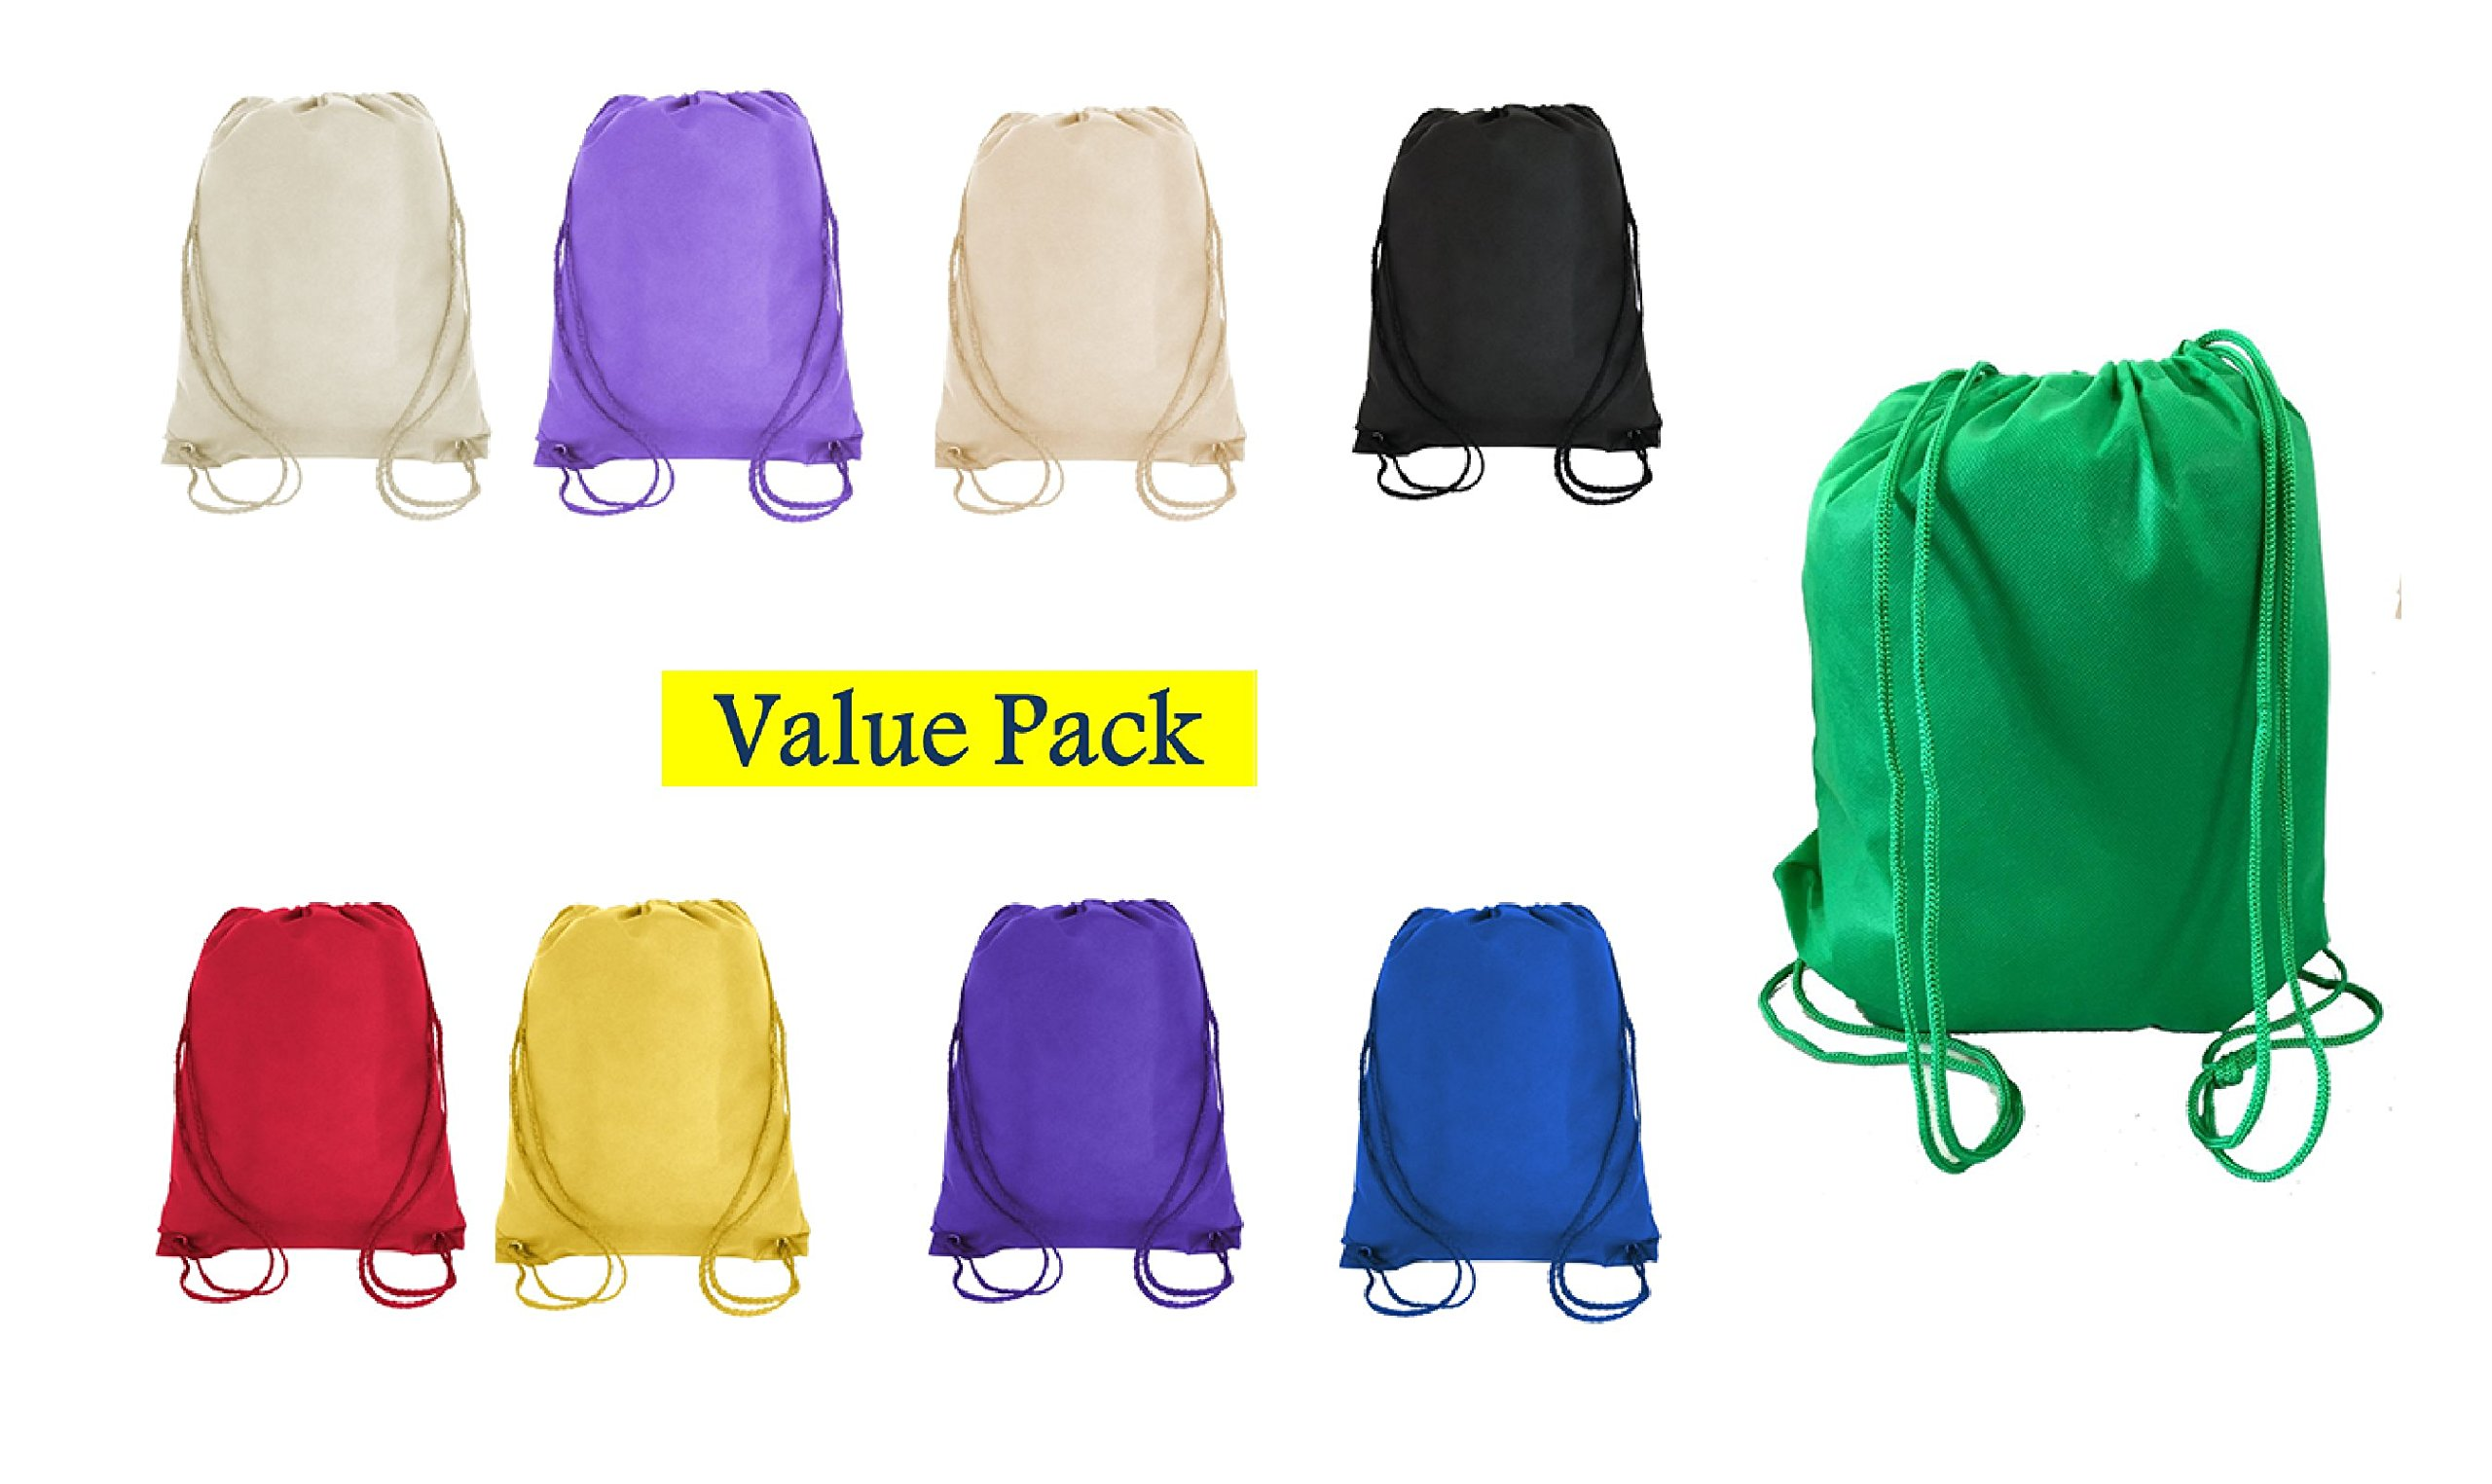 SUPER VALUE PACK- Bright Color Drawstring Bags, Small Size Junior Cinch Packs, Non-Woven Backpack, Promotional Bags (Mix Color-200 Pack) by Georgiabags